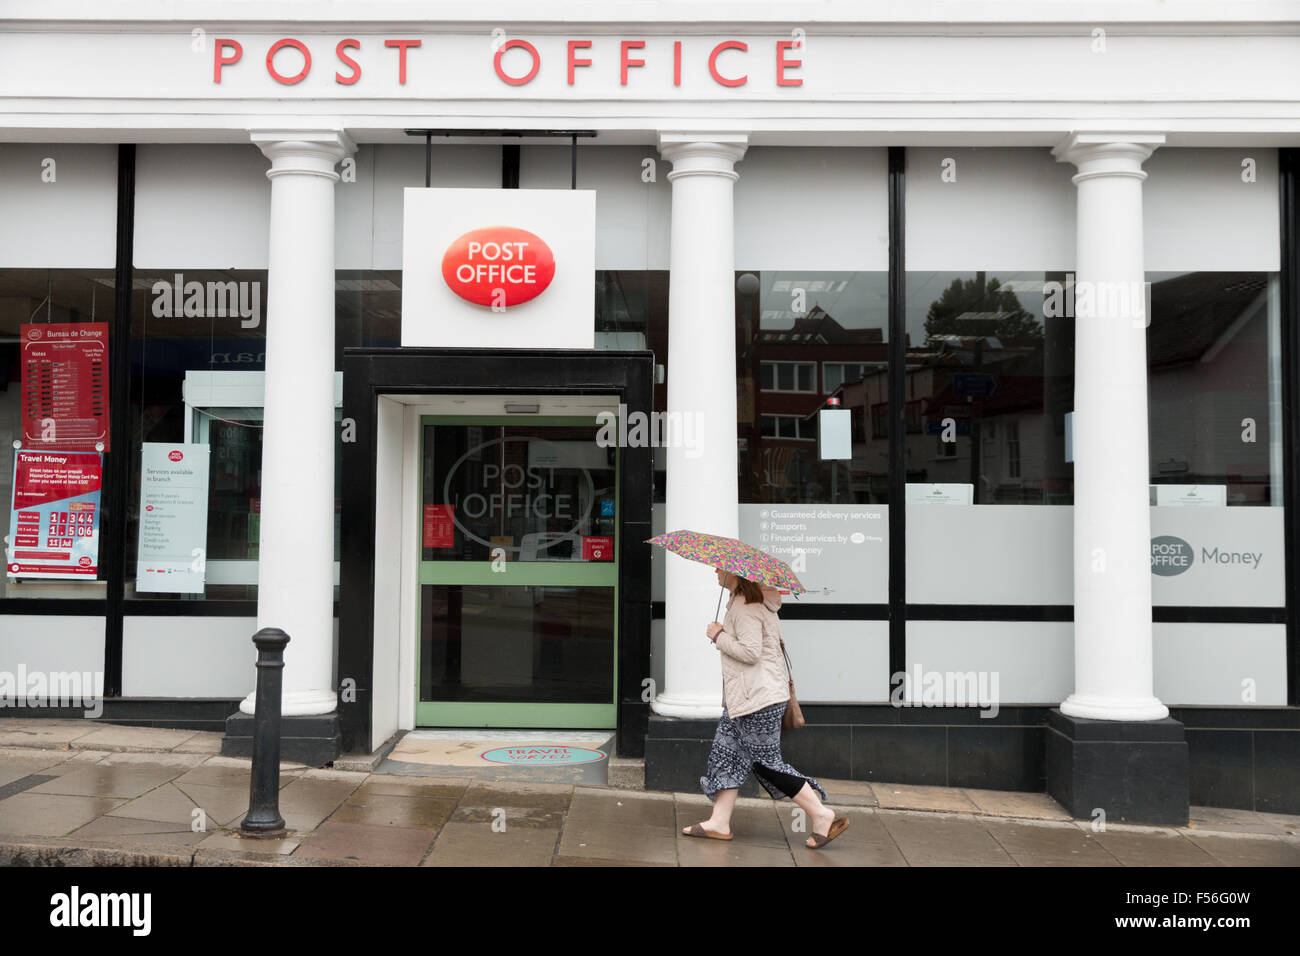 A woman enters Guildford Town Post Office building in the rain Stock Photo